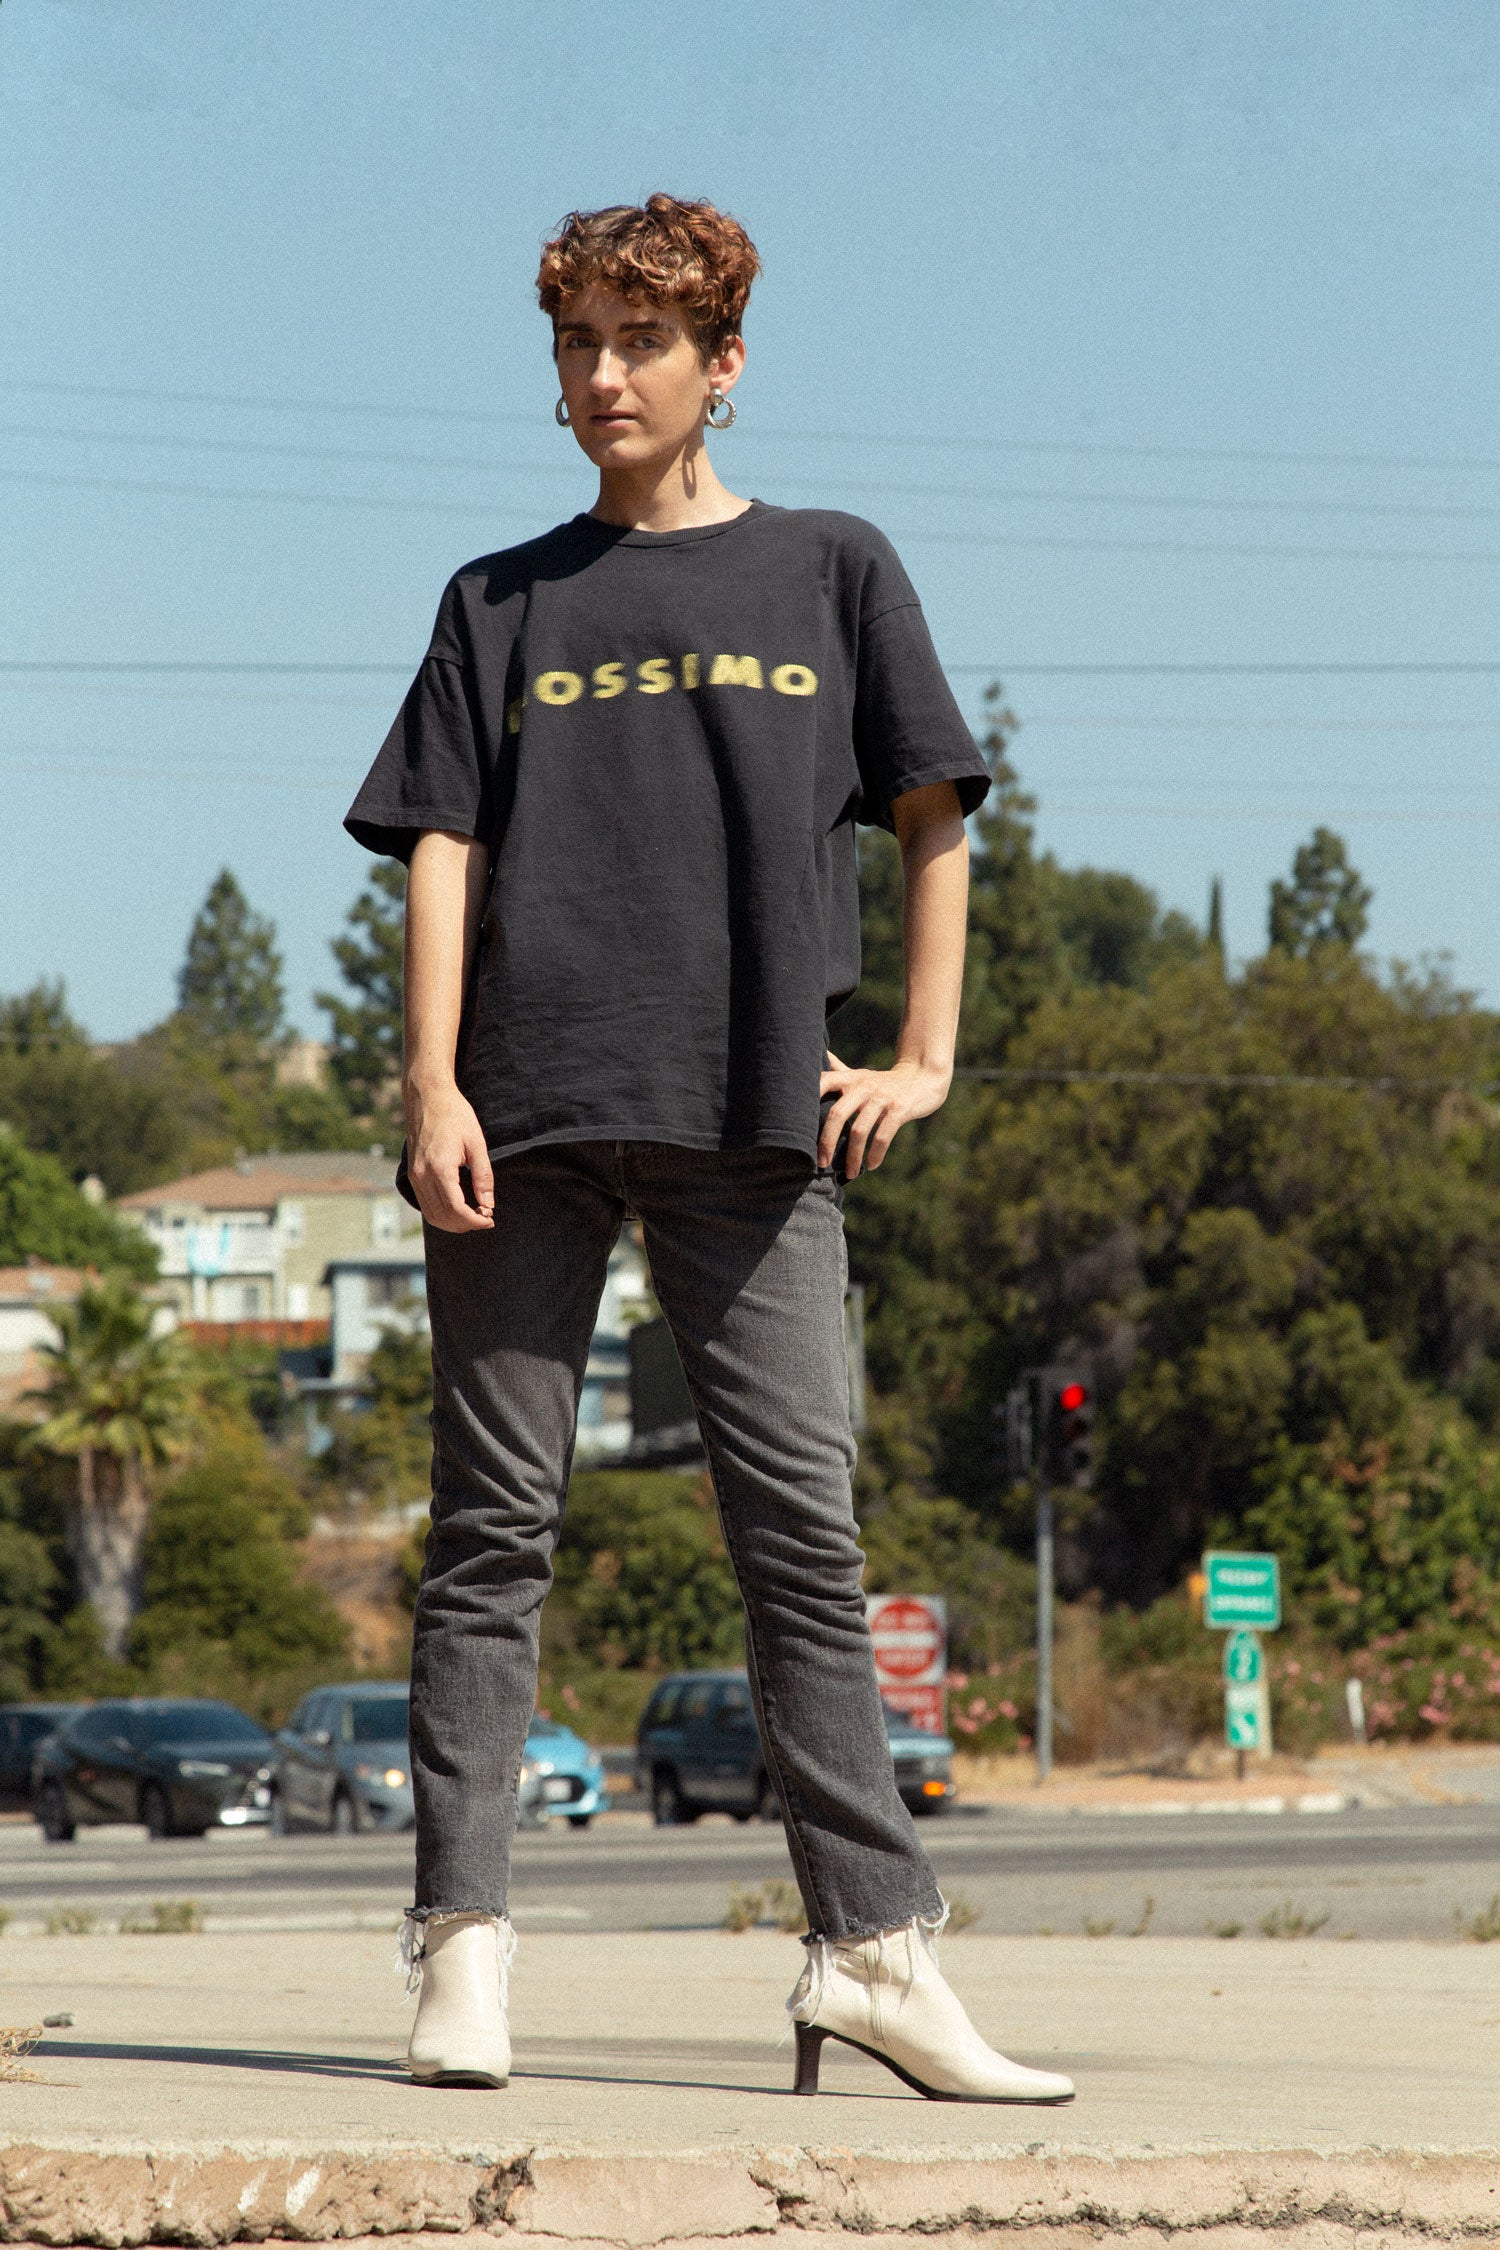 Non binary trans model stands in front of road, wearing 90s graphic t shirt, vintage Levi's jeans and white boots.